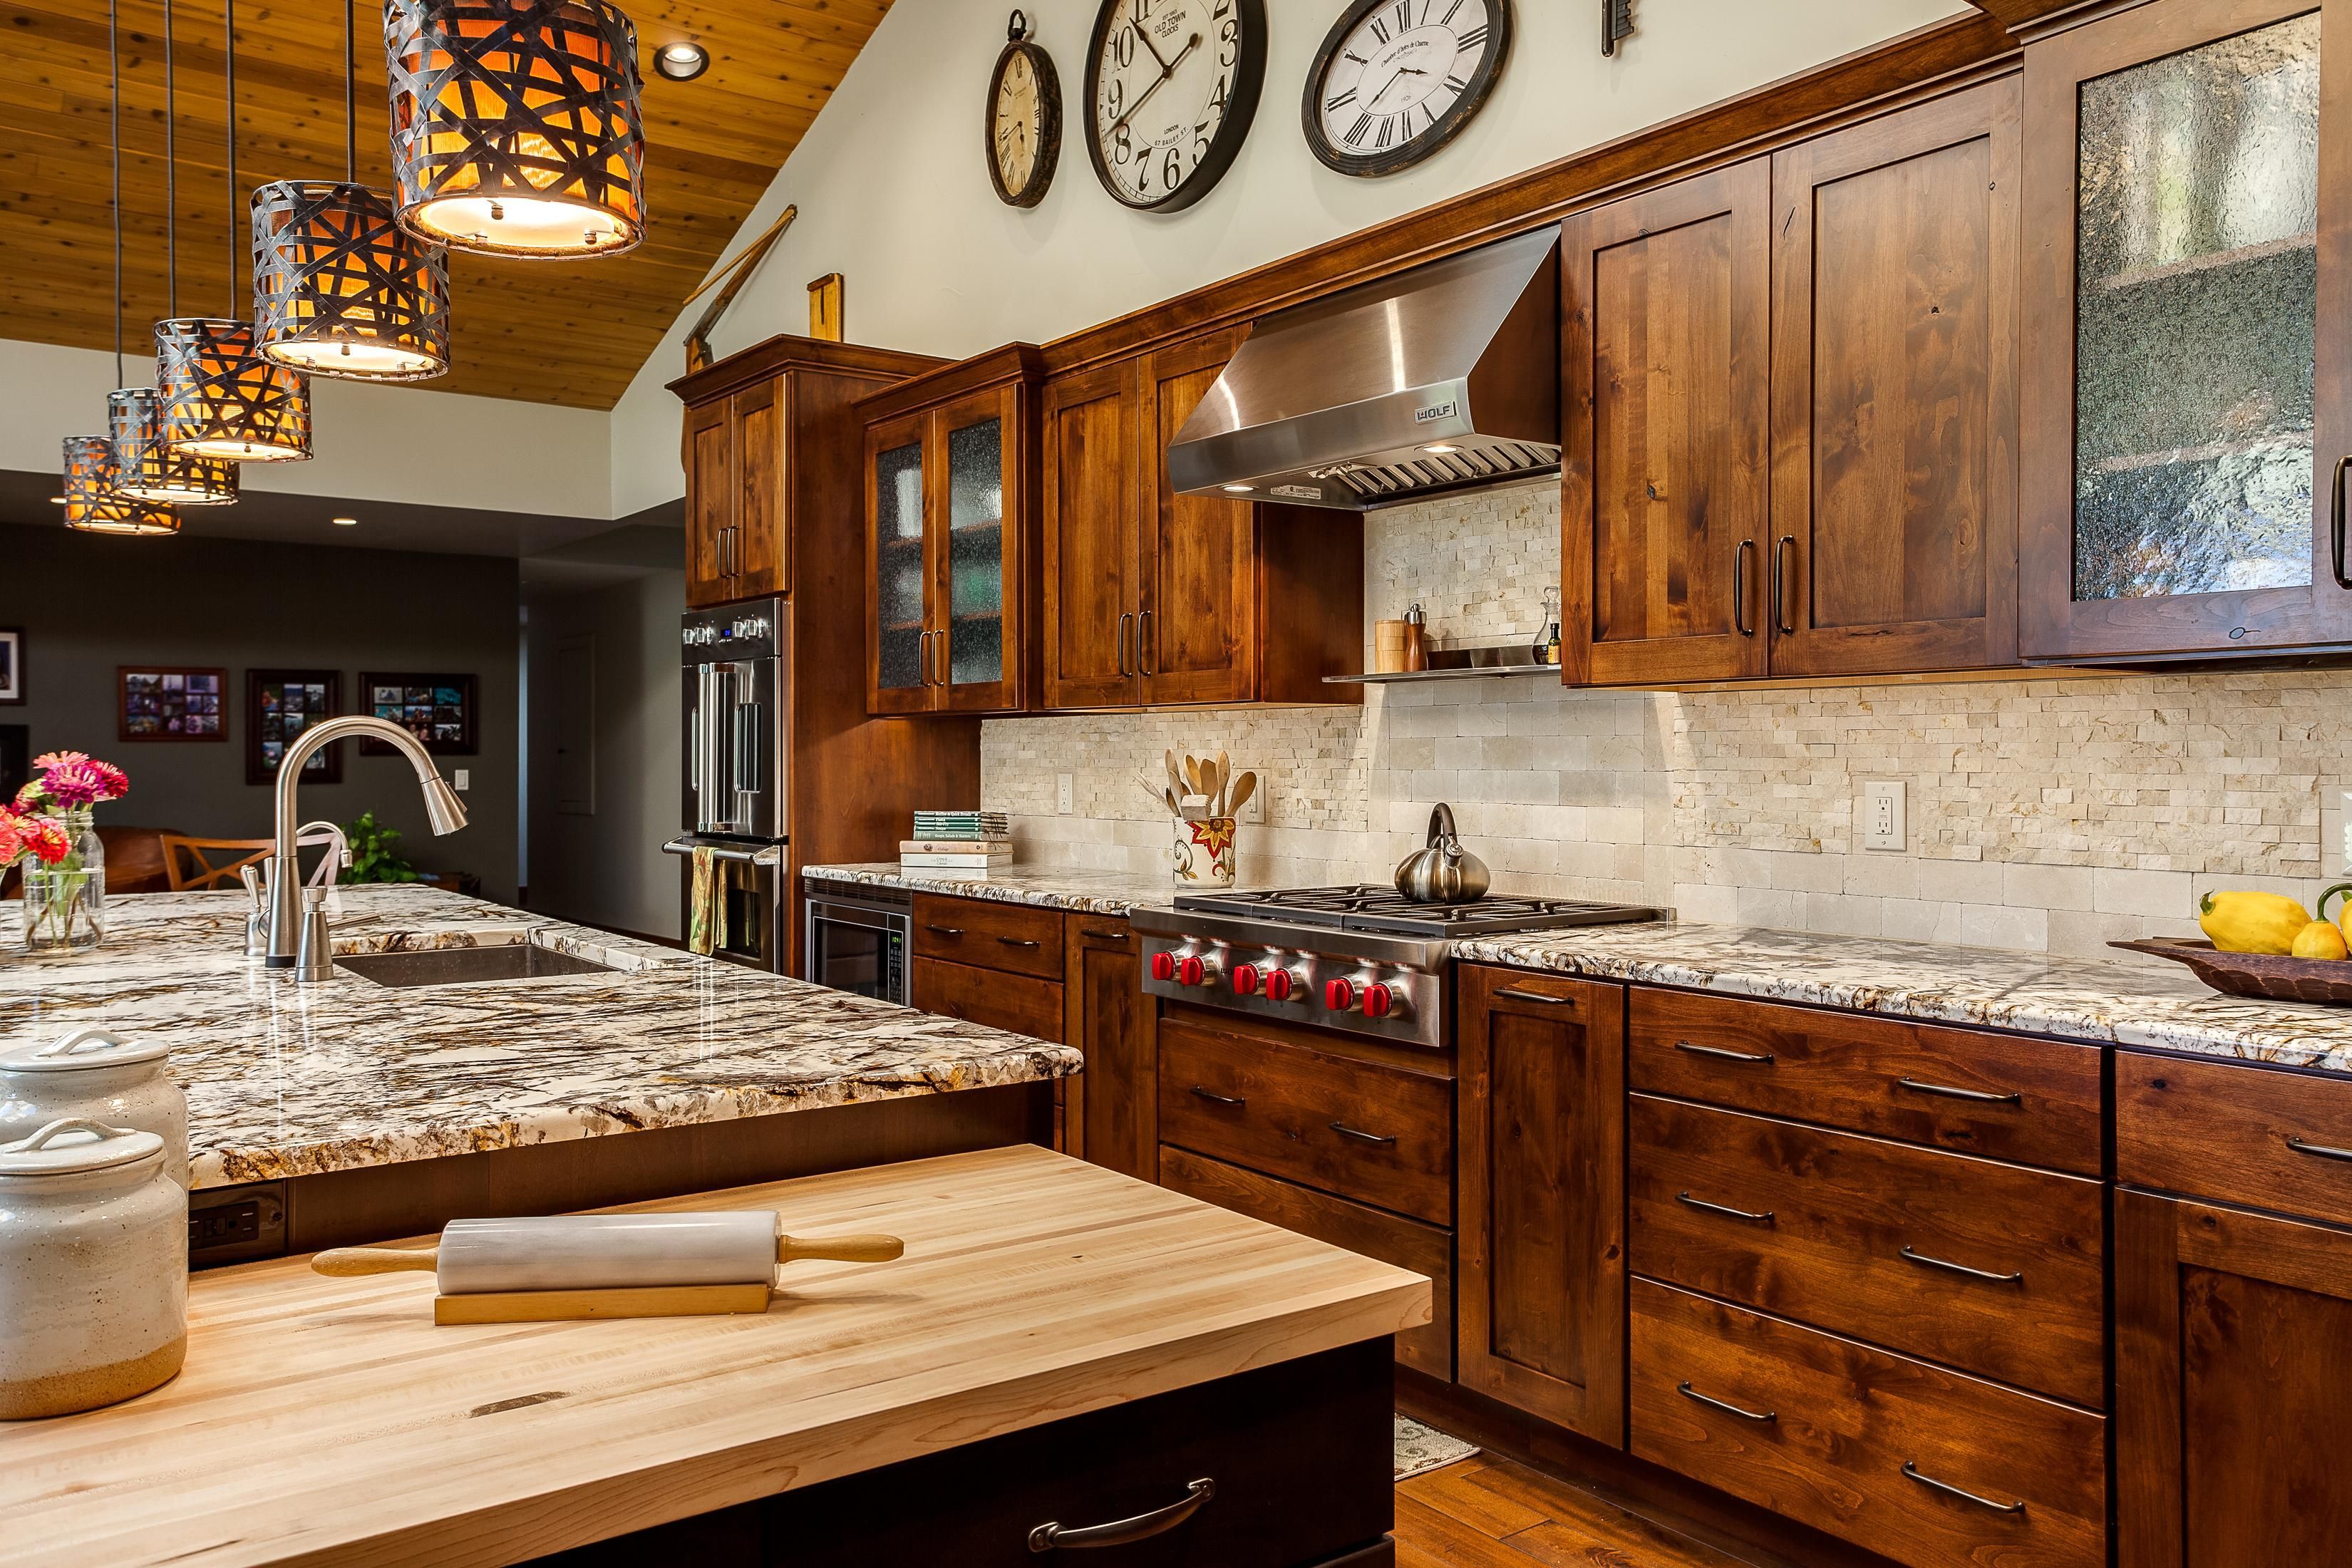 Take A Look At Our Colorado Rustic Kitchen Gallery Jm Kitchen And Bath Https Www Jmw Kitchen Cabinet Design Rustic Home Interiors Rustic Kitchen Cabinets